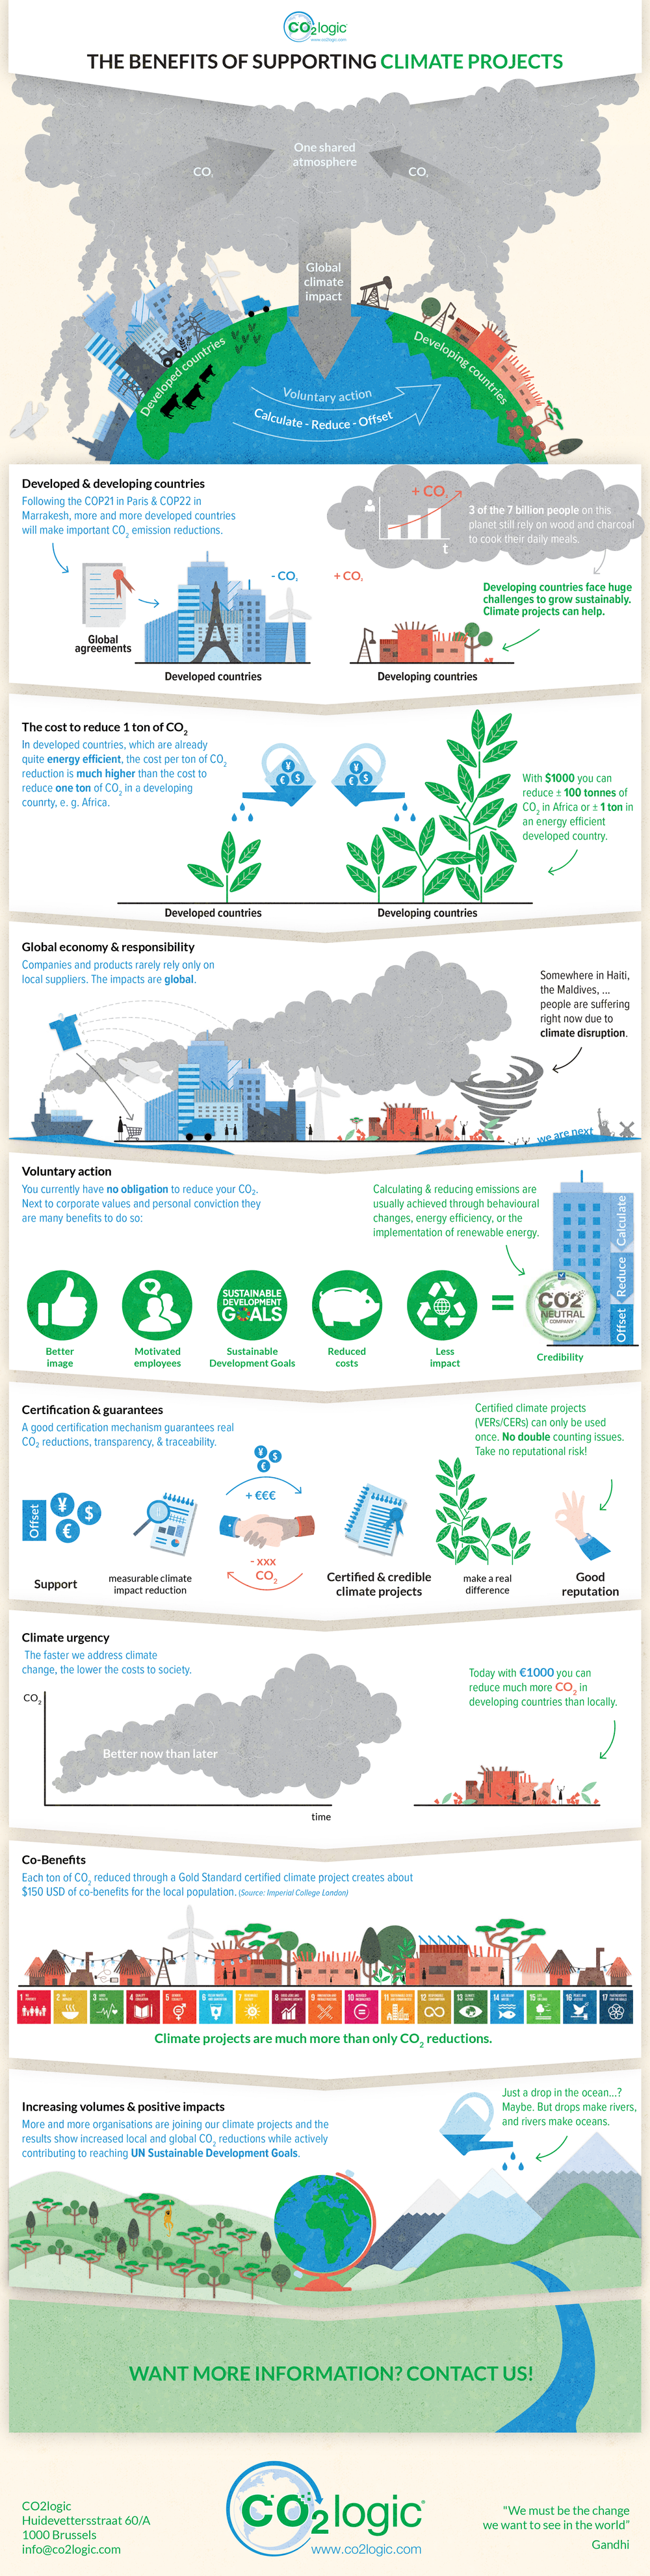 Infographic Benefits of supporting climate projects